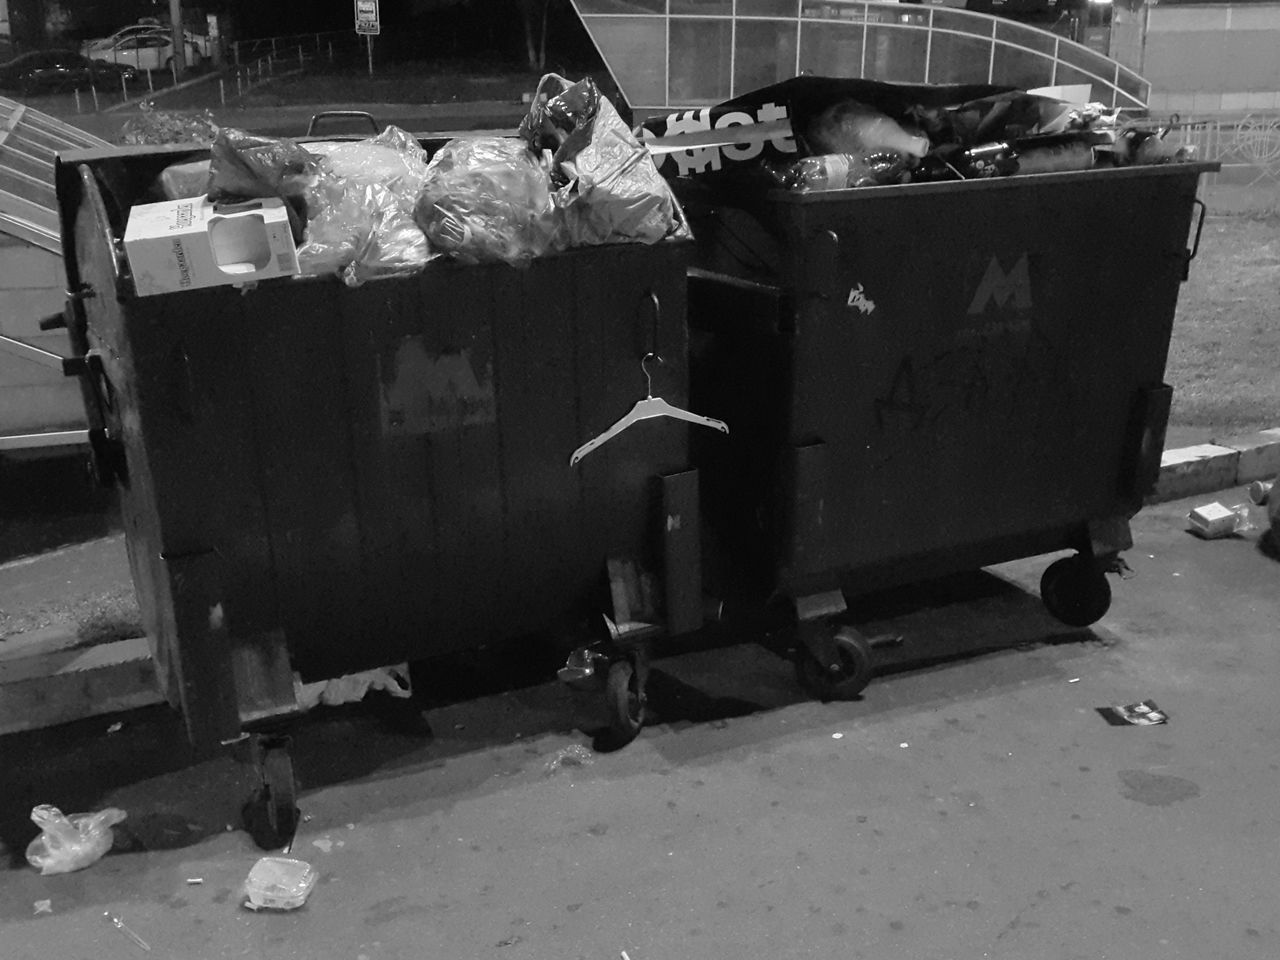 garbage bin, food, real people, city, people, food and drink, men, garbage, street, day, garbage can, container, full length, outdoors, child, occupation, musical instrument, transportation, side view, standing